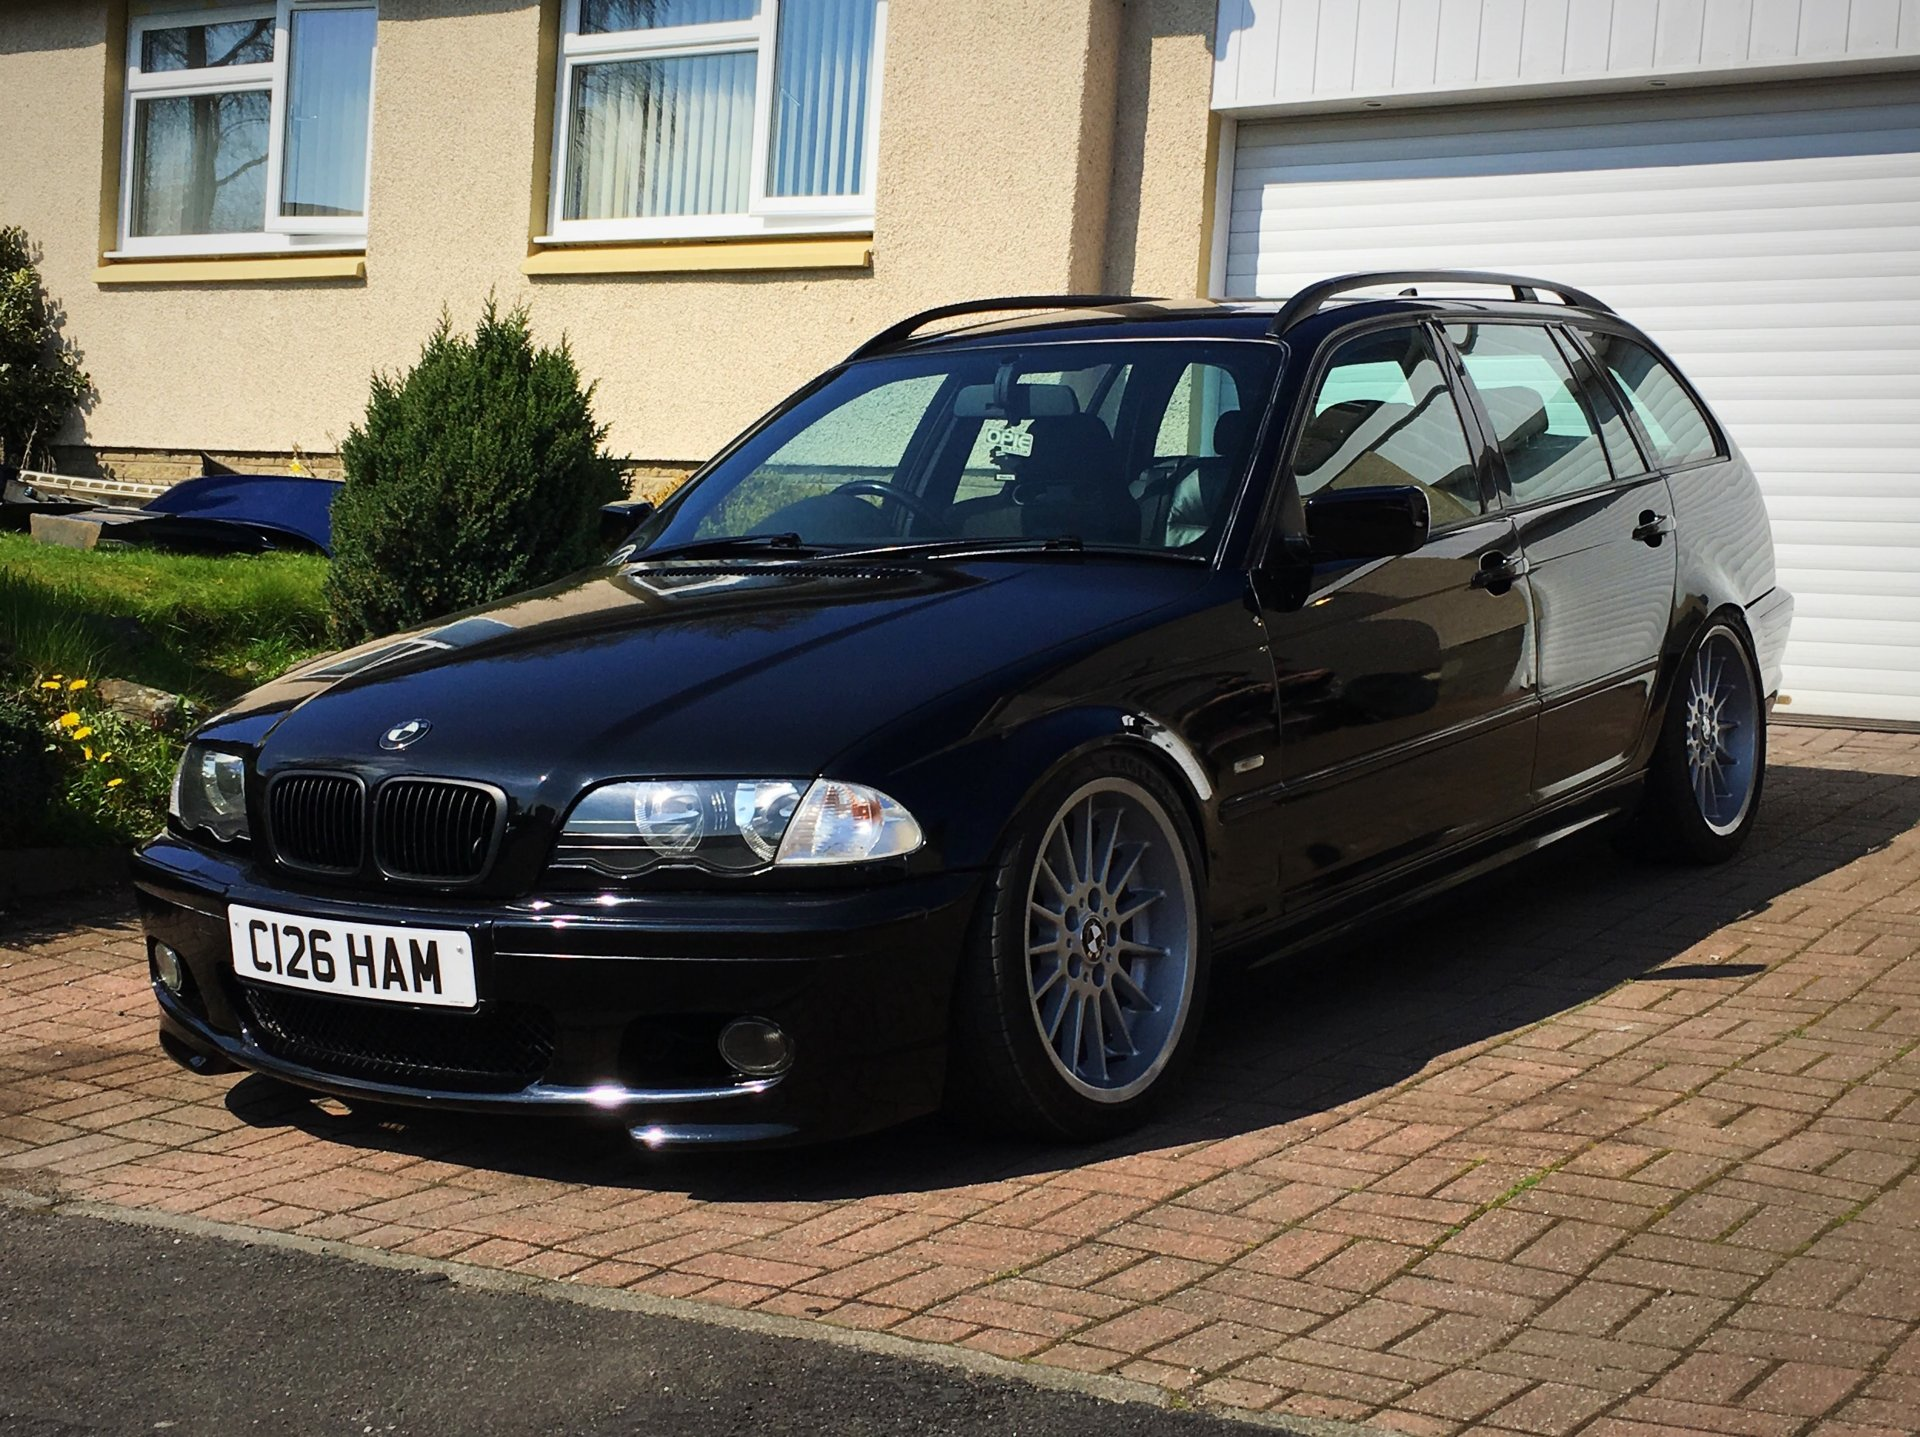 bmw e46 m3 s54 3 2 sport touring estate sleeper driftworks forum. Black Bedroom Furniture Sets. Home Design Ideas